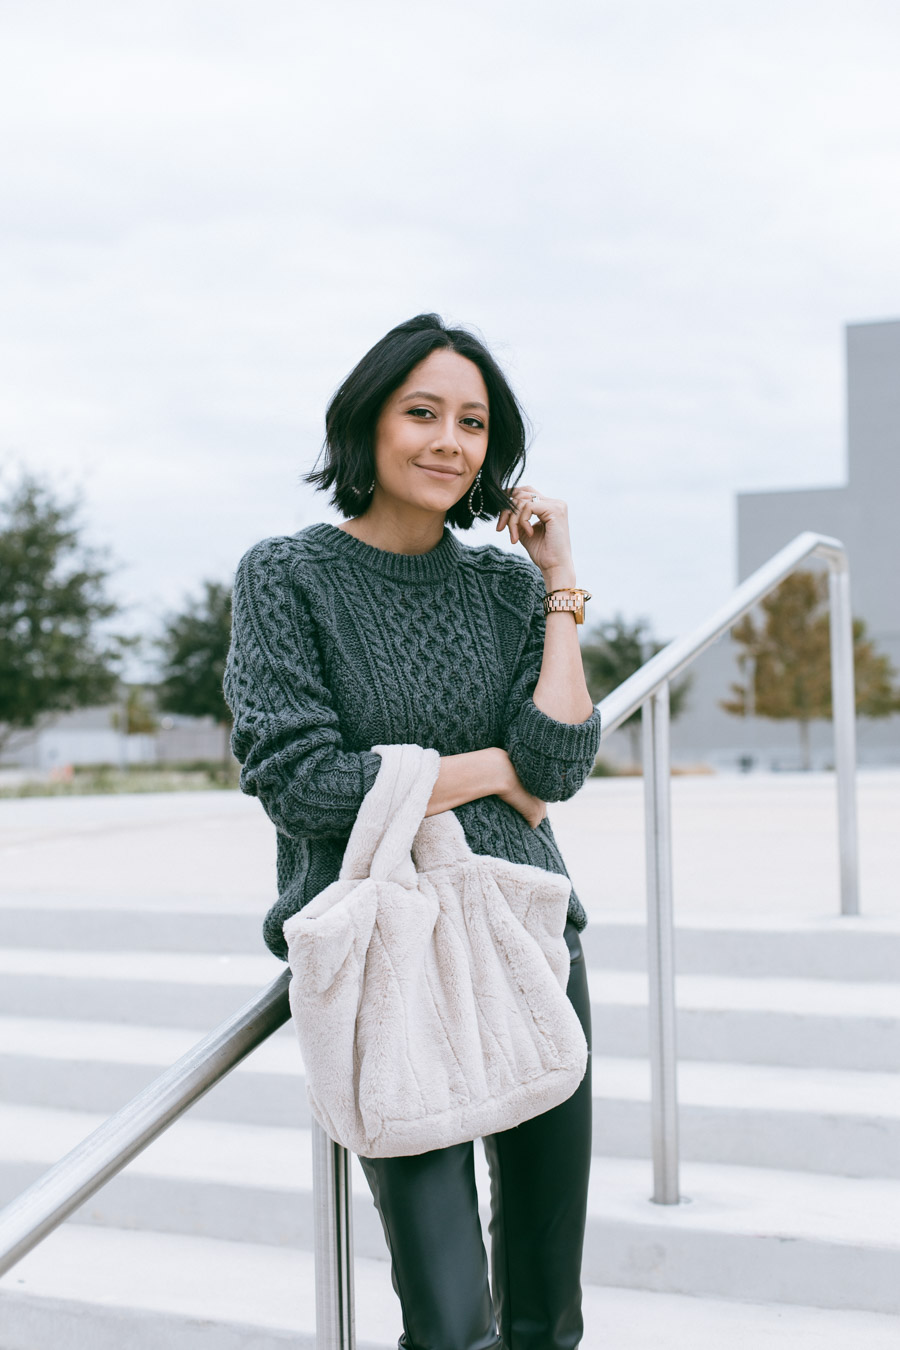 Fashion blogger Lilly Beltran in an easy fall outfit with black faux leather leggings and cable knit sweater.